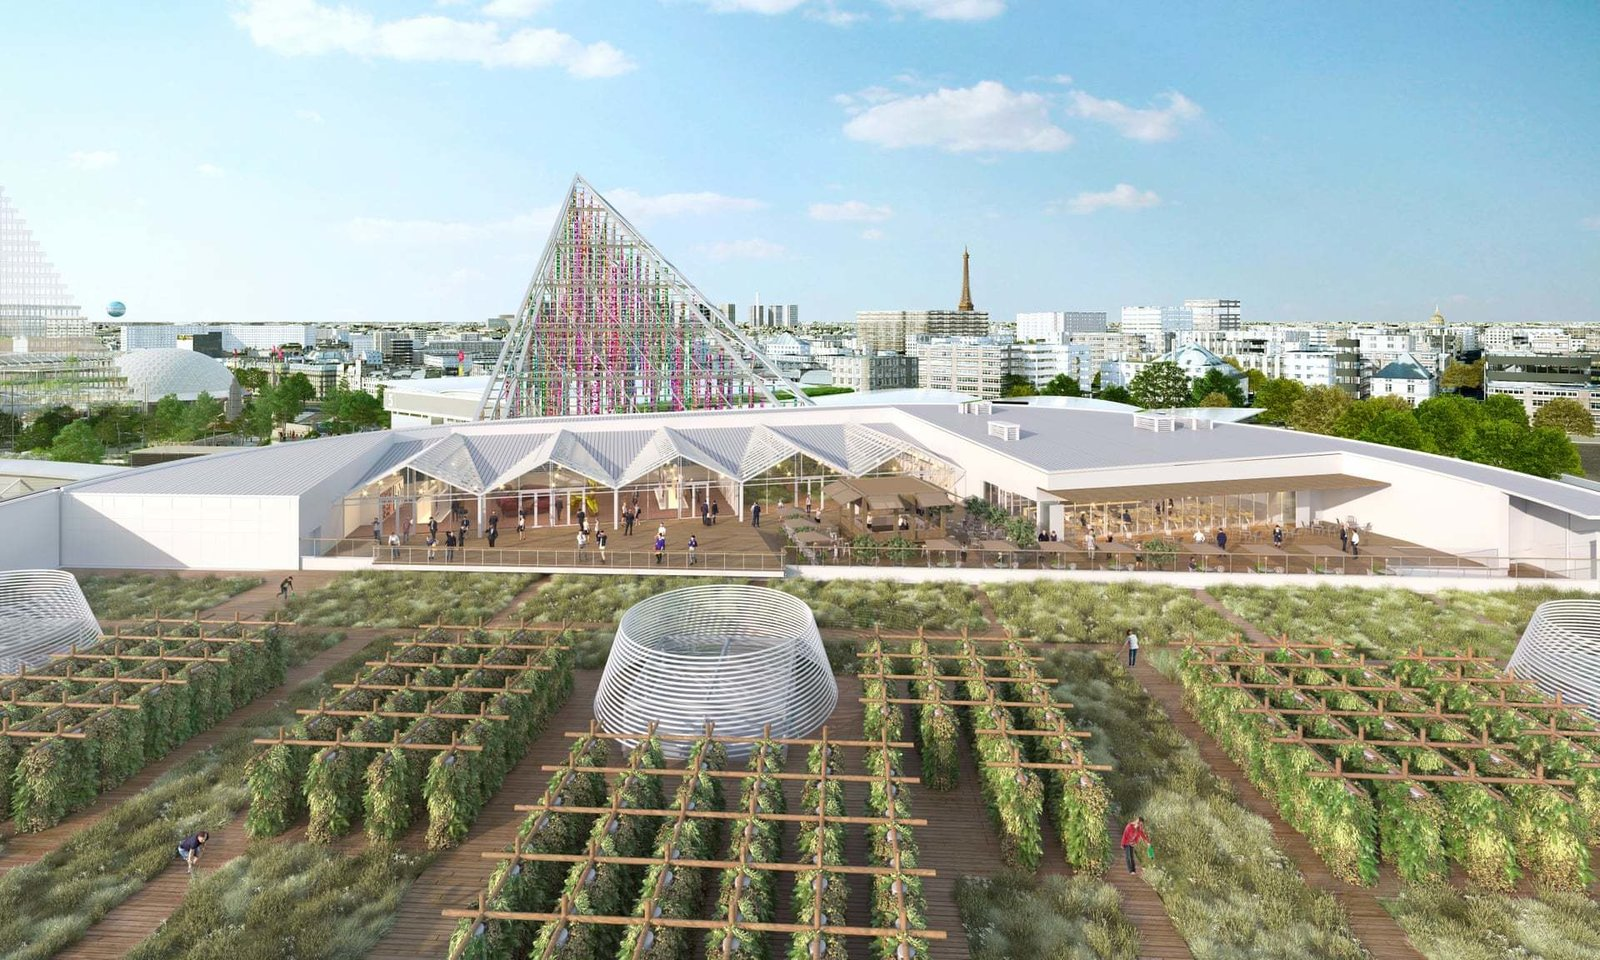 The World's Largest Urban Farm Is Opening Next Year in Paris